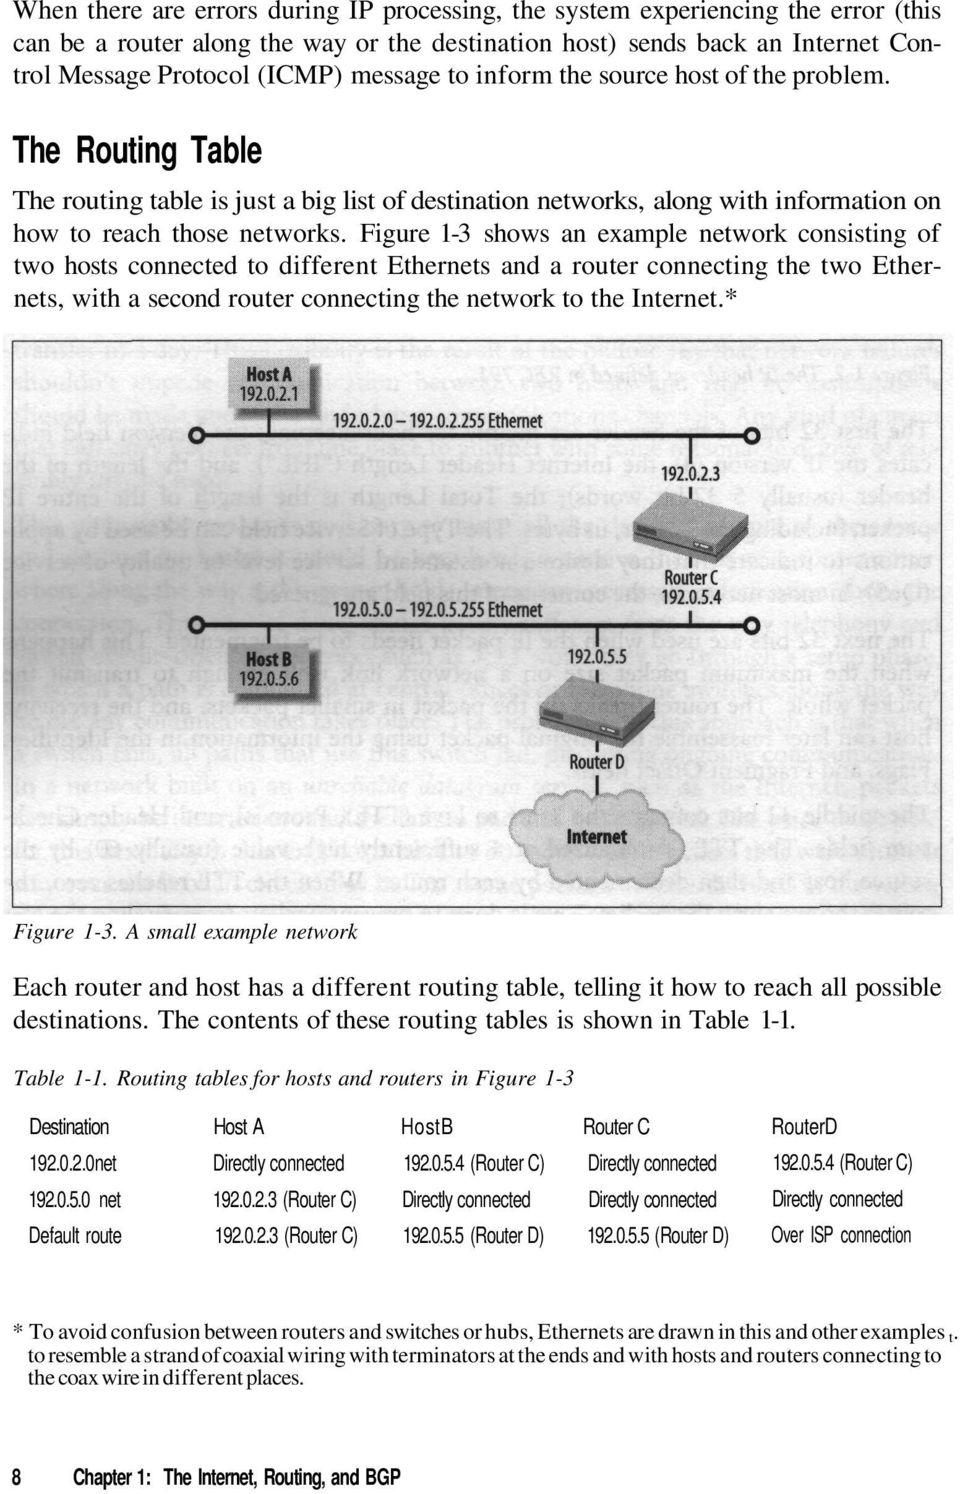 Figure 1-3 shows an example network consisting of two hosts connected to different Ethernets and a router connecting the two Ethernets, with a second router connecting the network to the Internet.